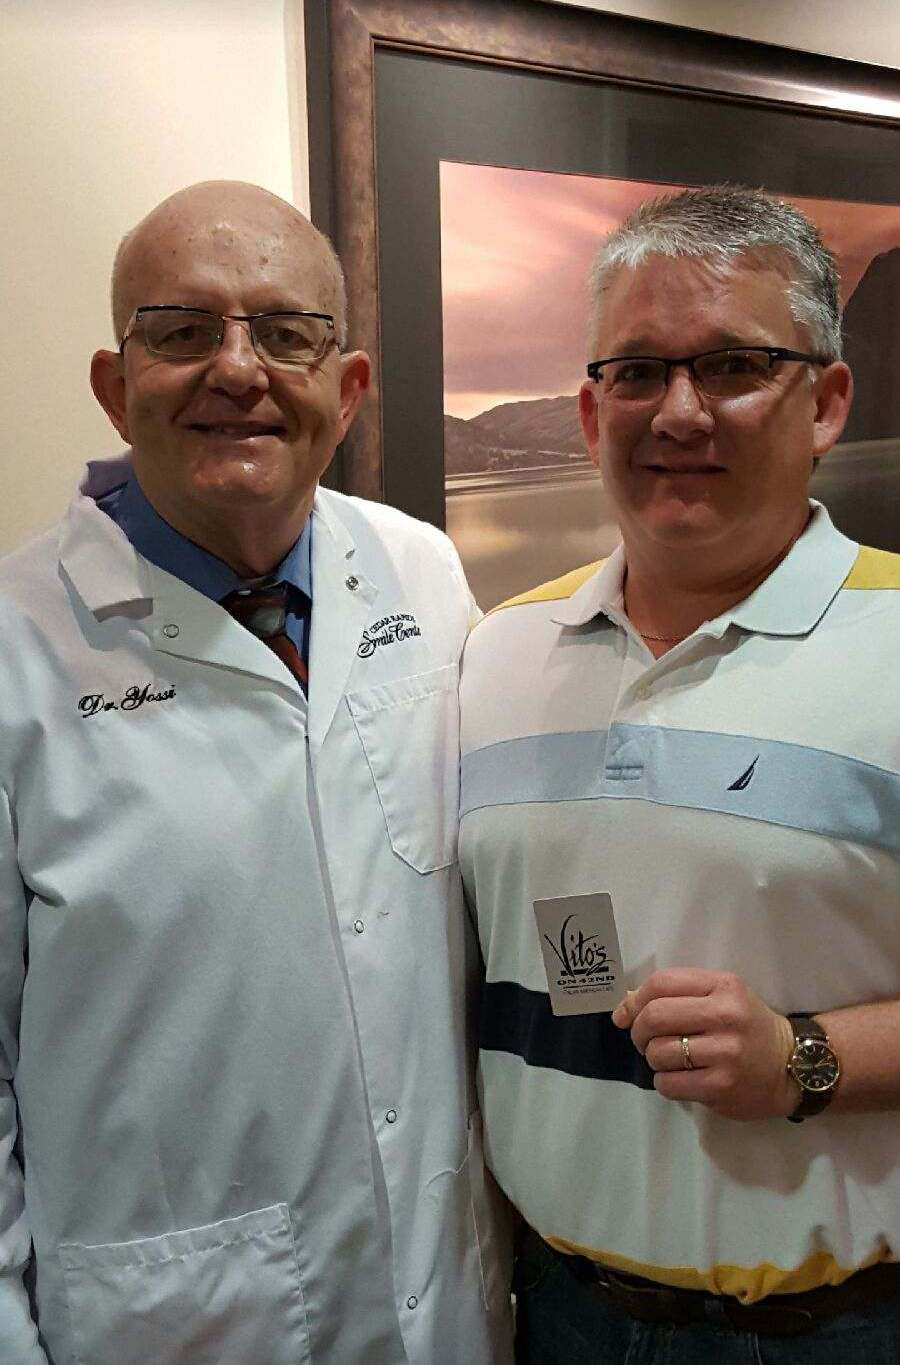 Dan-Christensen-with-Dr-Henrich-cropped